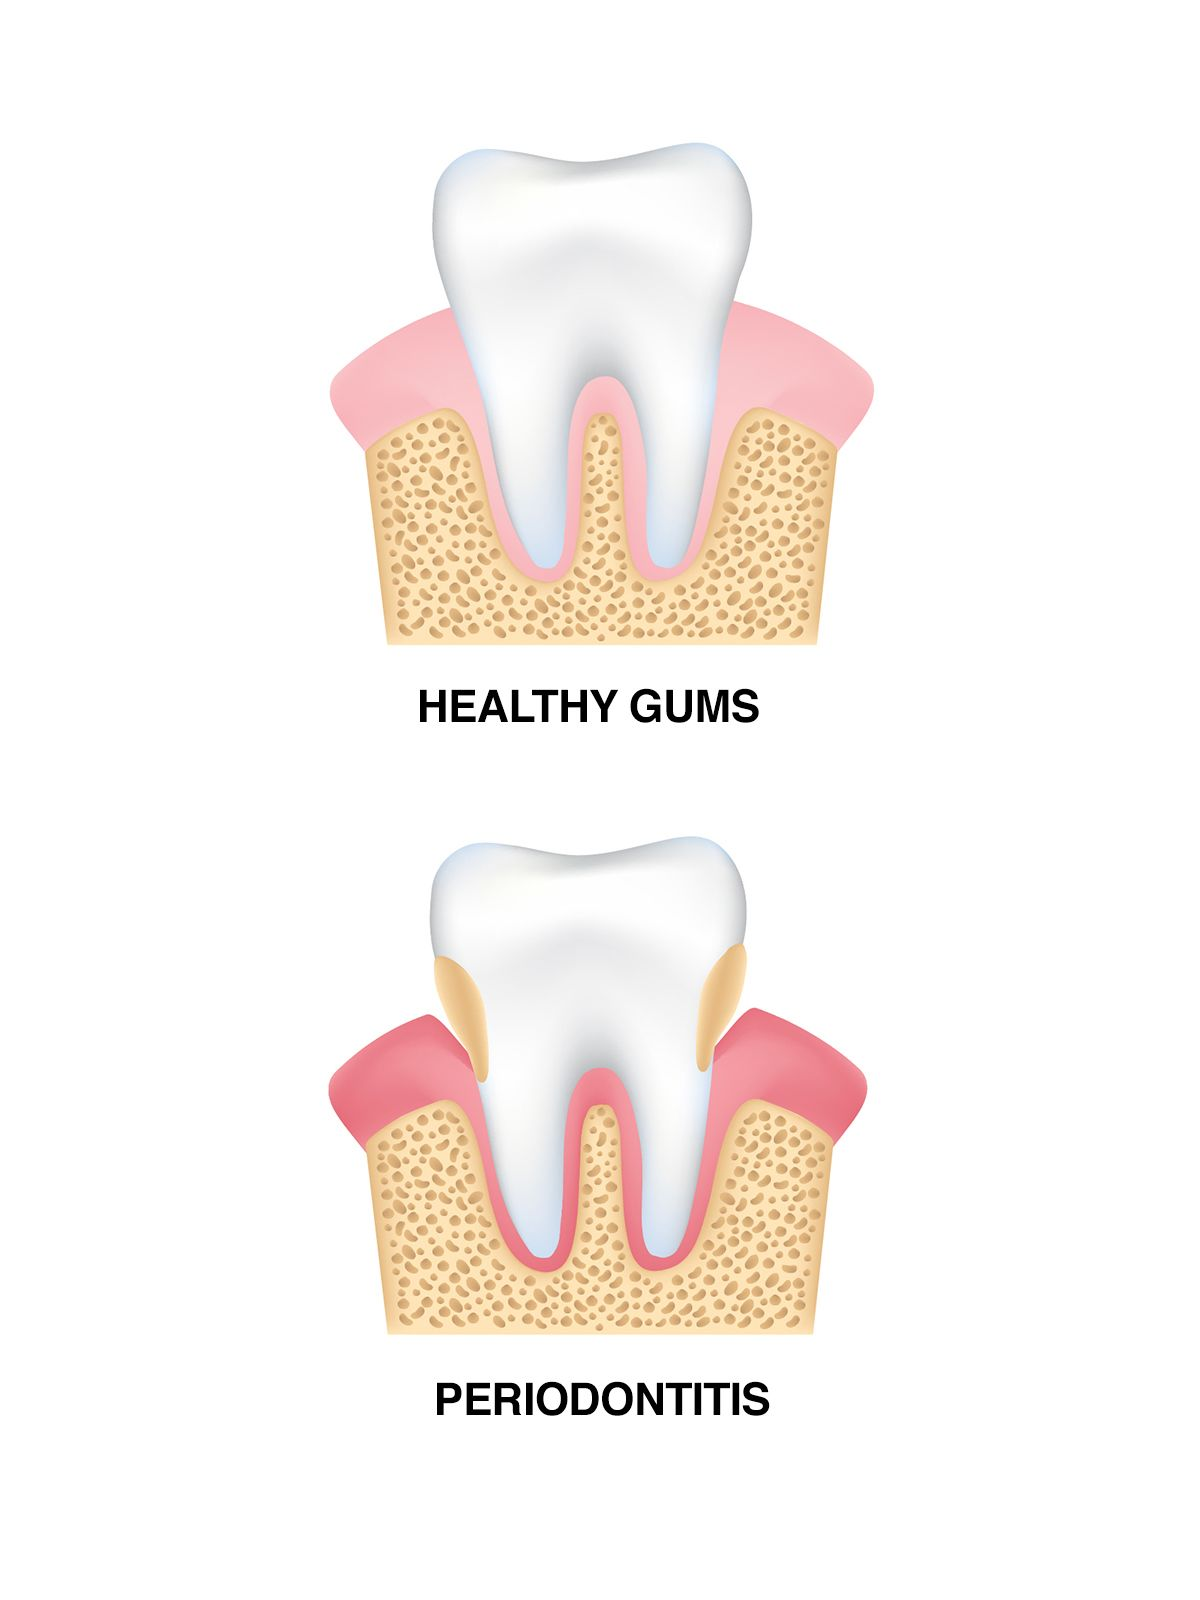 The effects of periodontal disease on a tooth and the gums